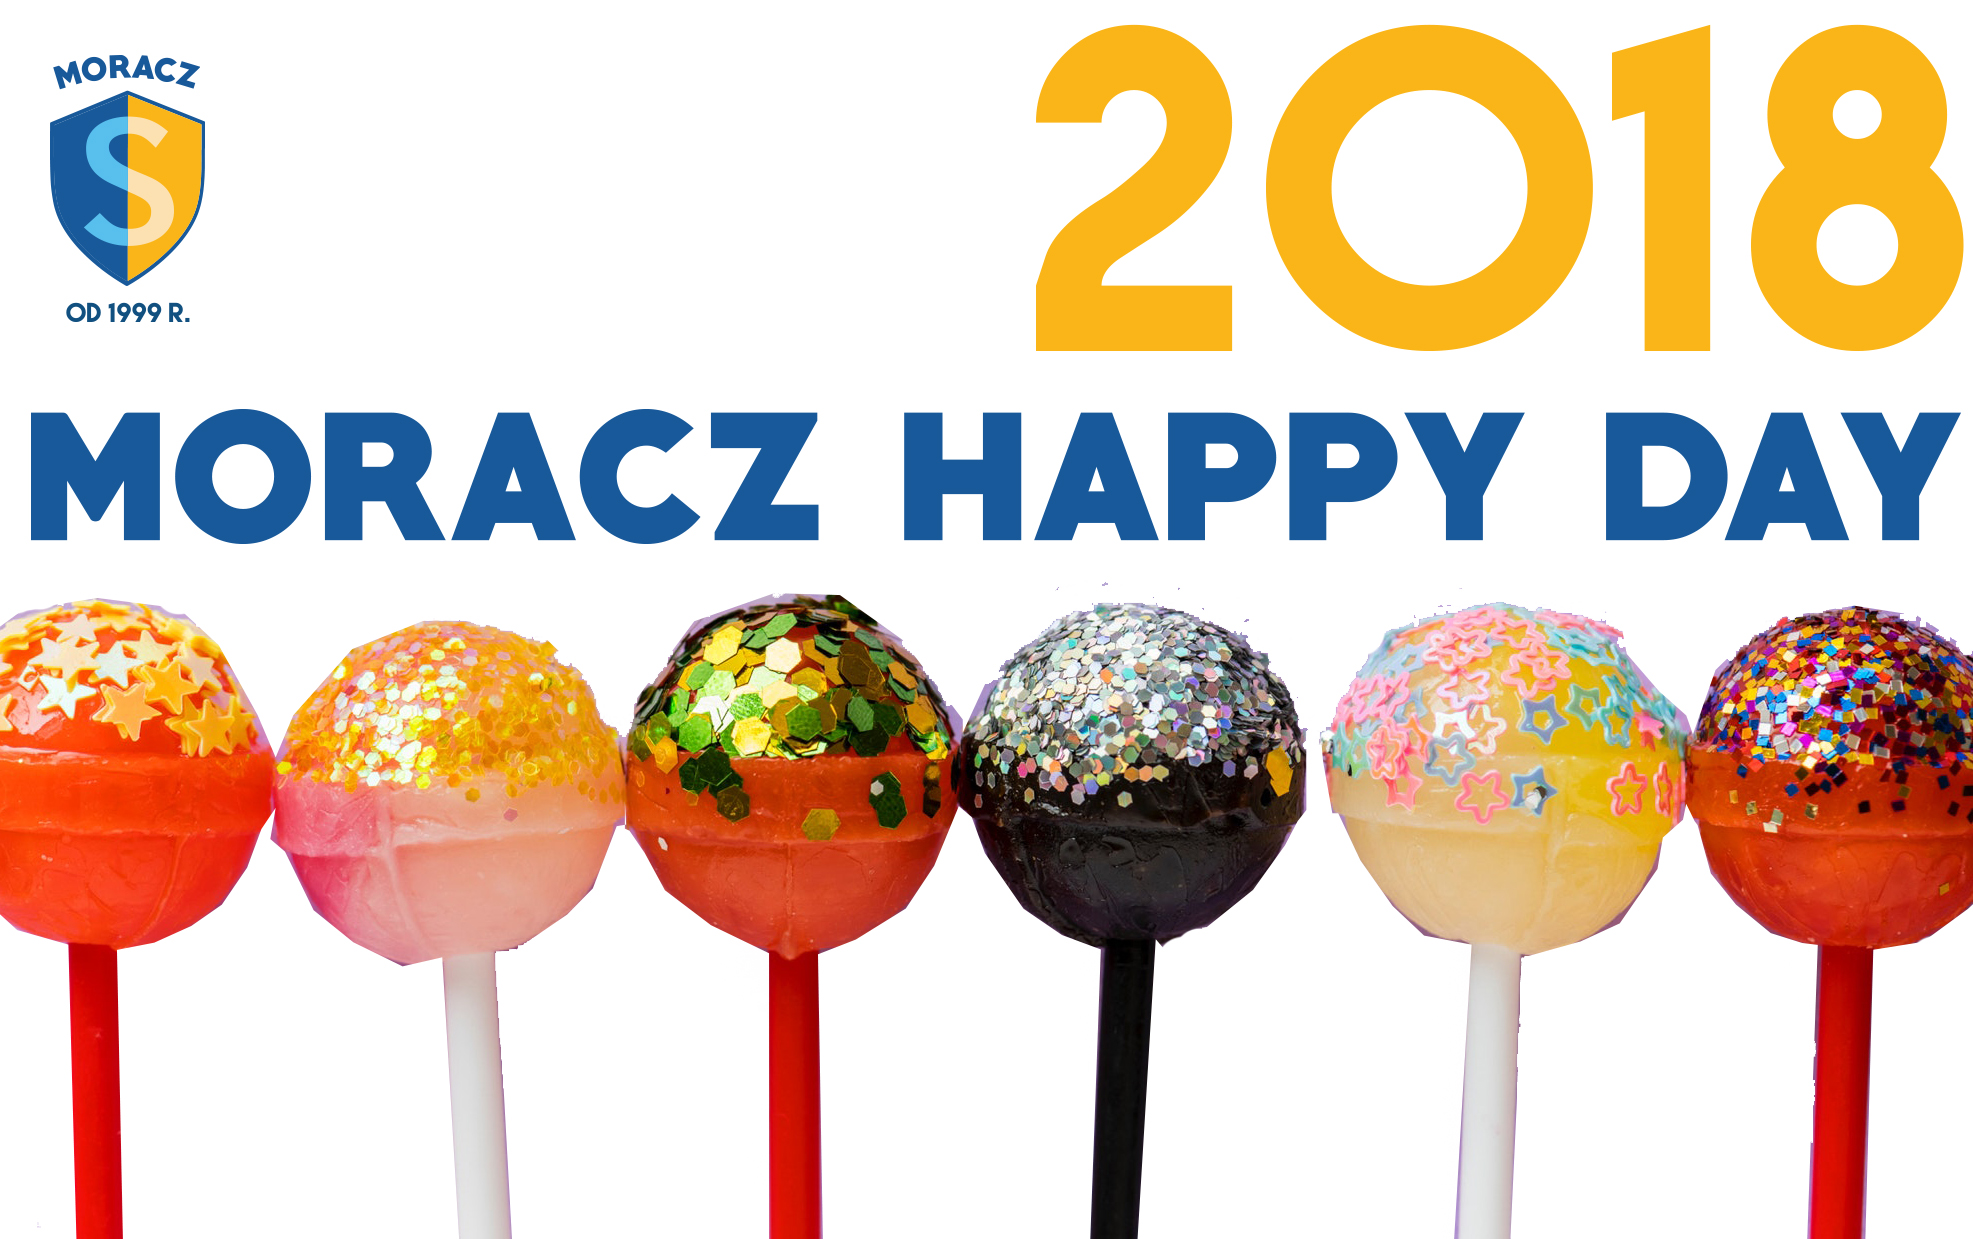 Moracz HAPPY DAY 2018